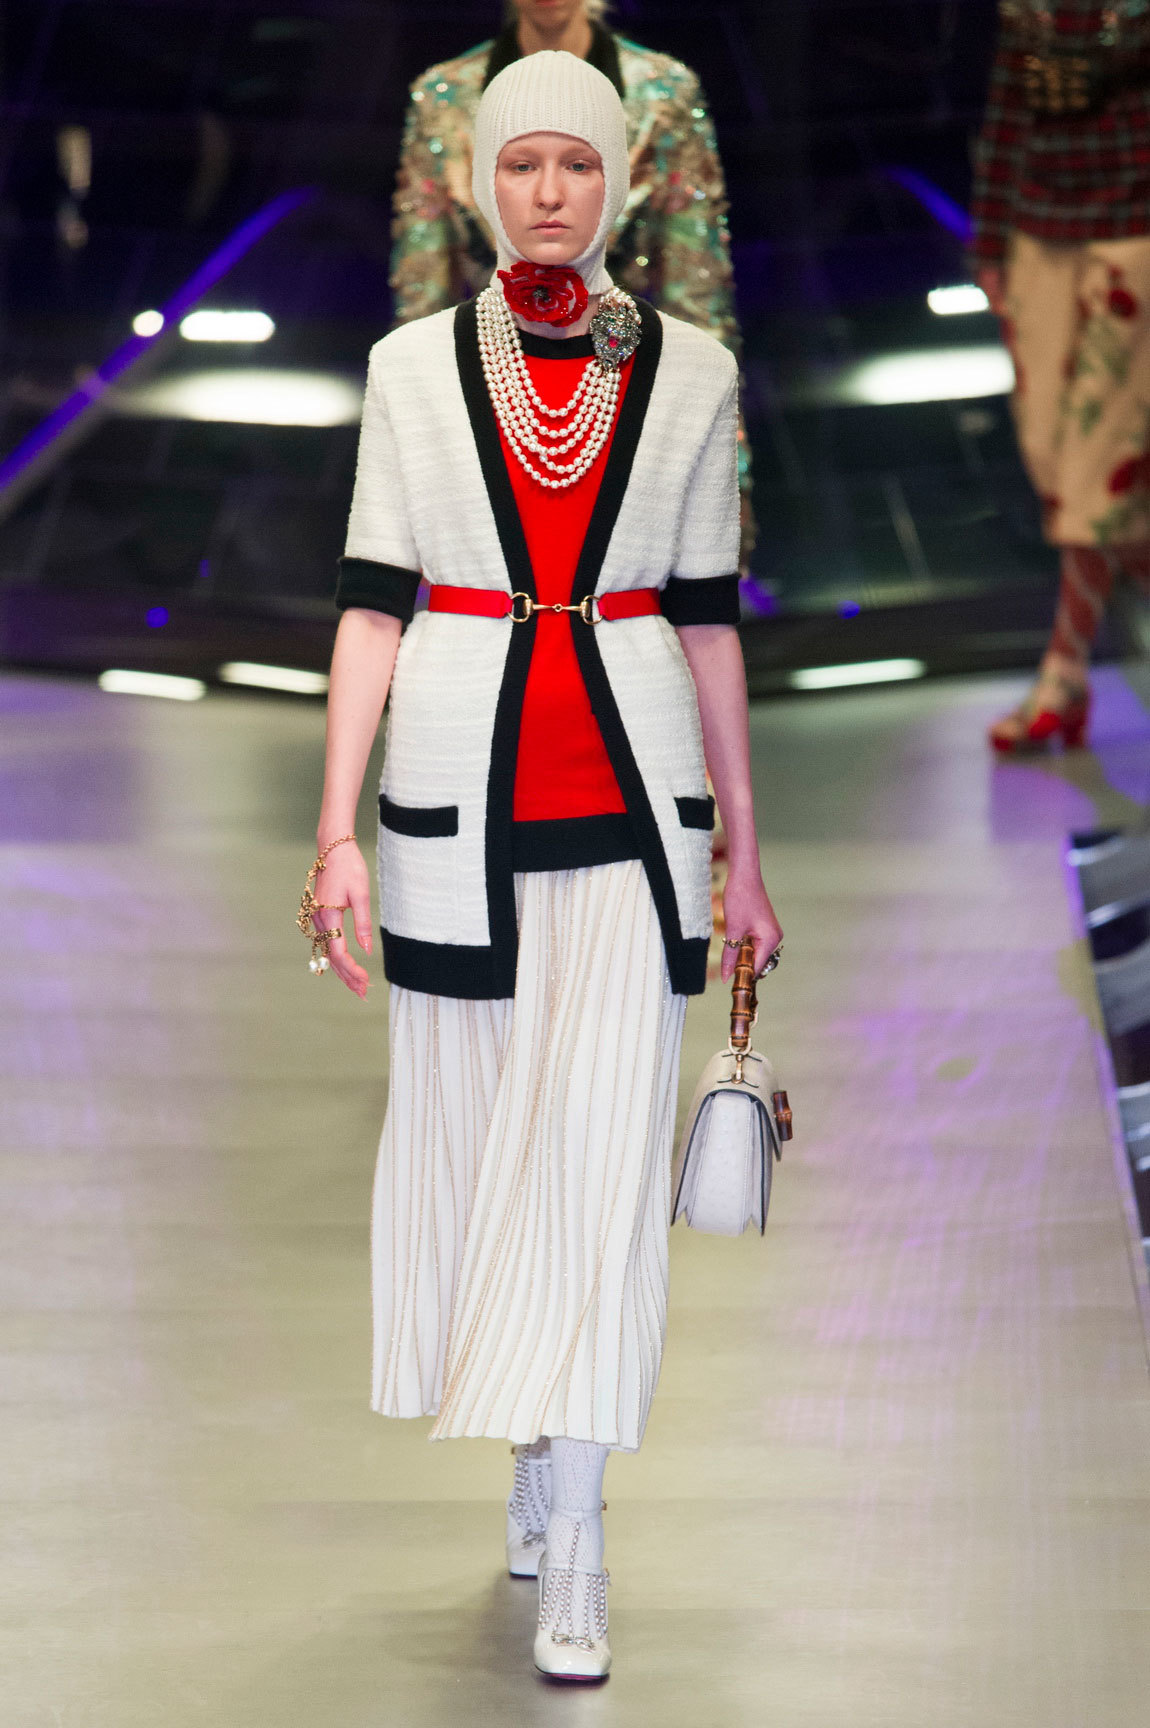 25a83a0720b gucci opens milan fashion week with a display of modern fashion alchemy -  i-D